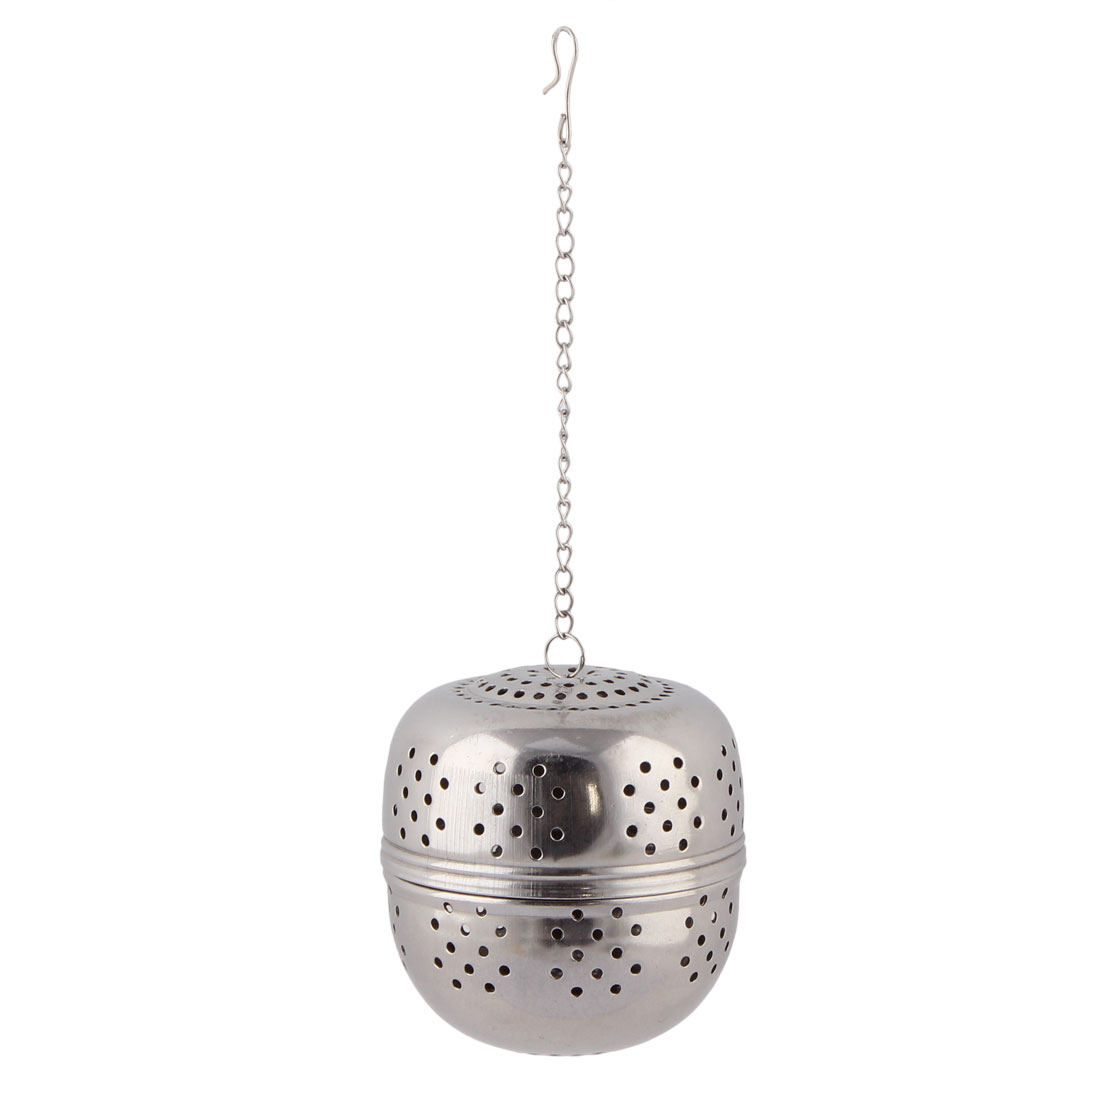 Household Stainless Steel Loose Leaf Tea Spice Perfume Infuser Ball Strainer 5.5cm Dia